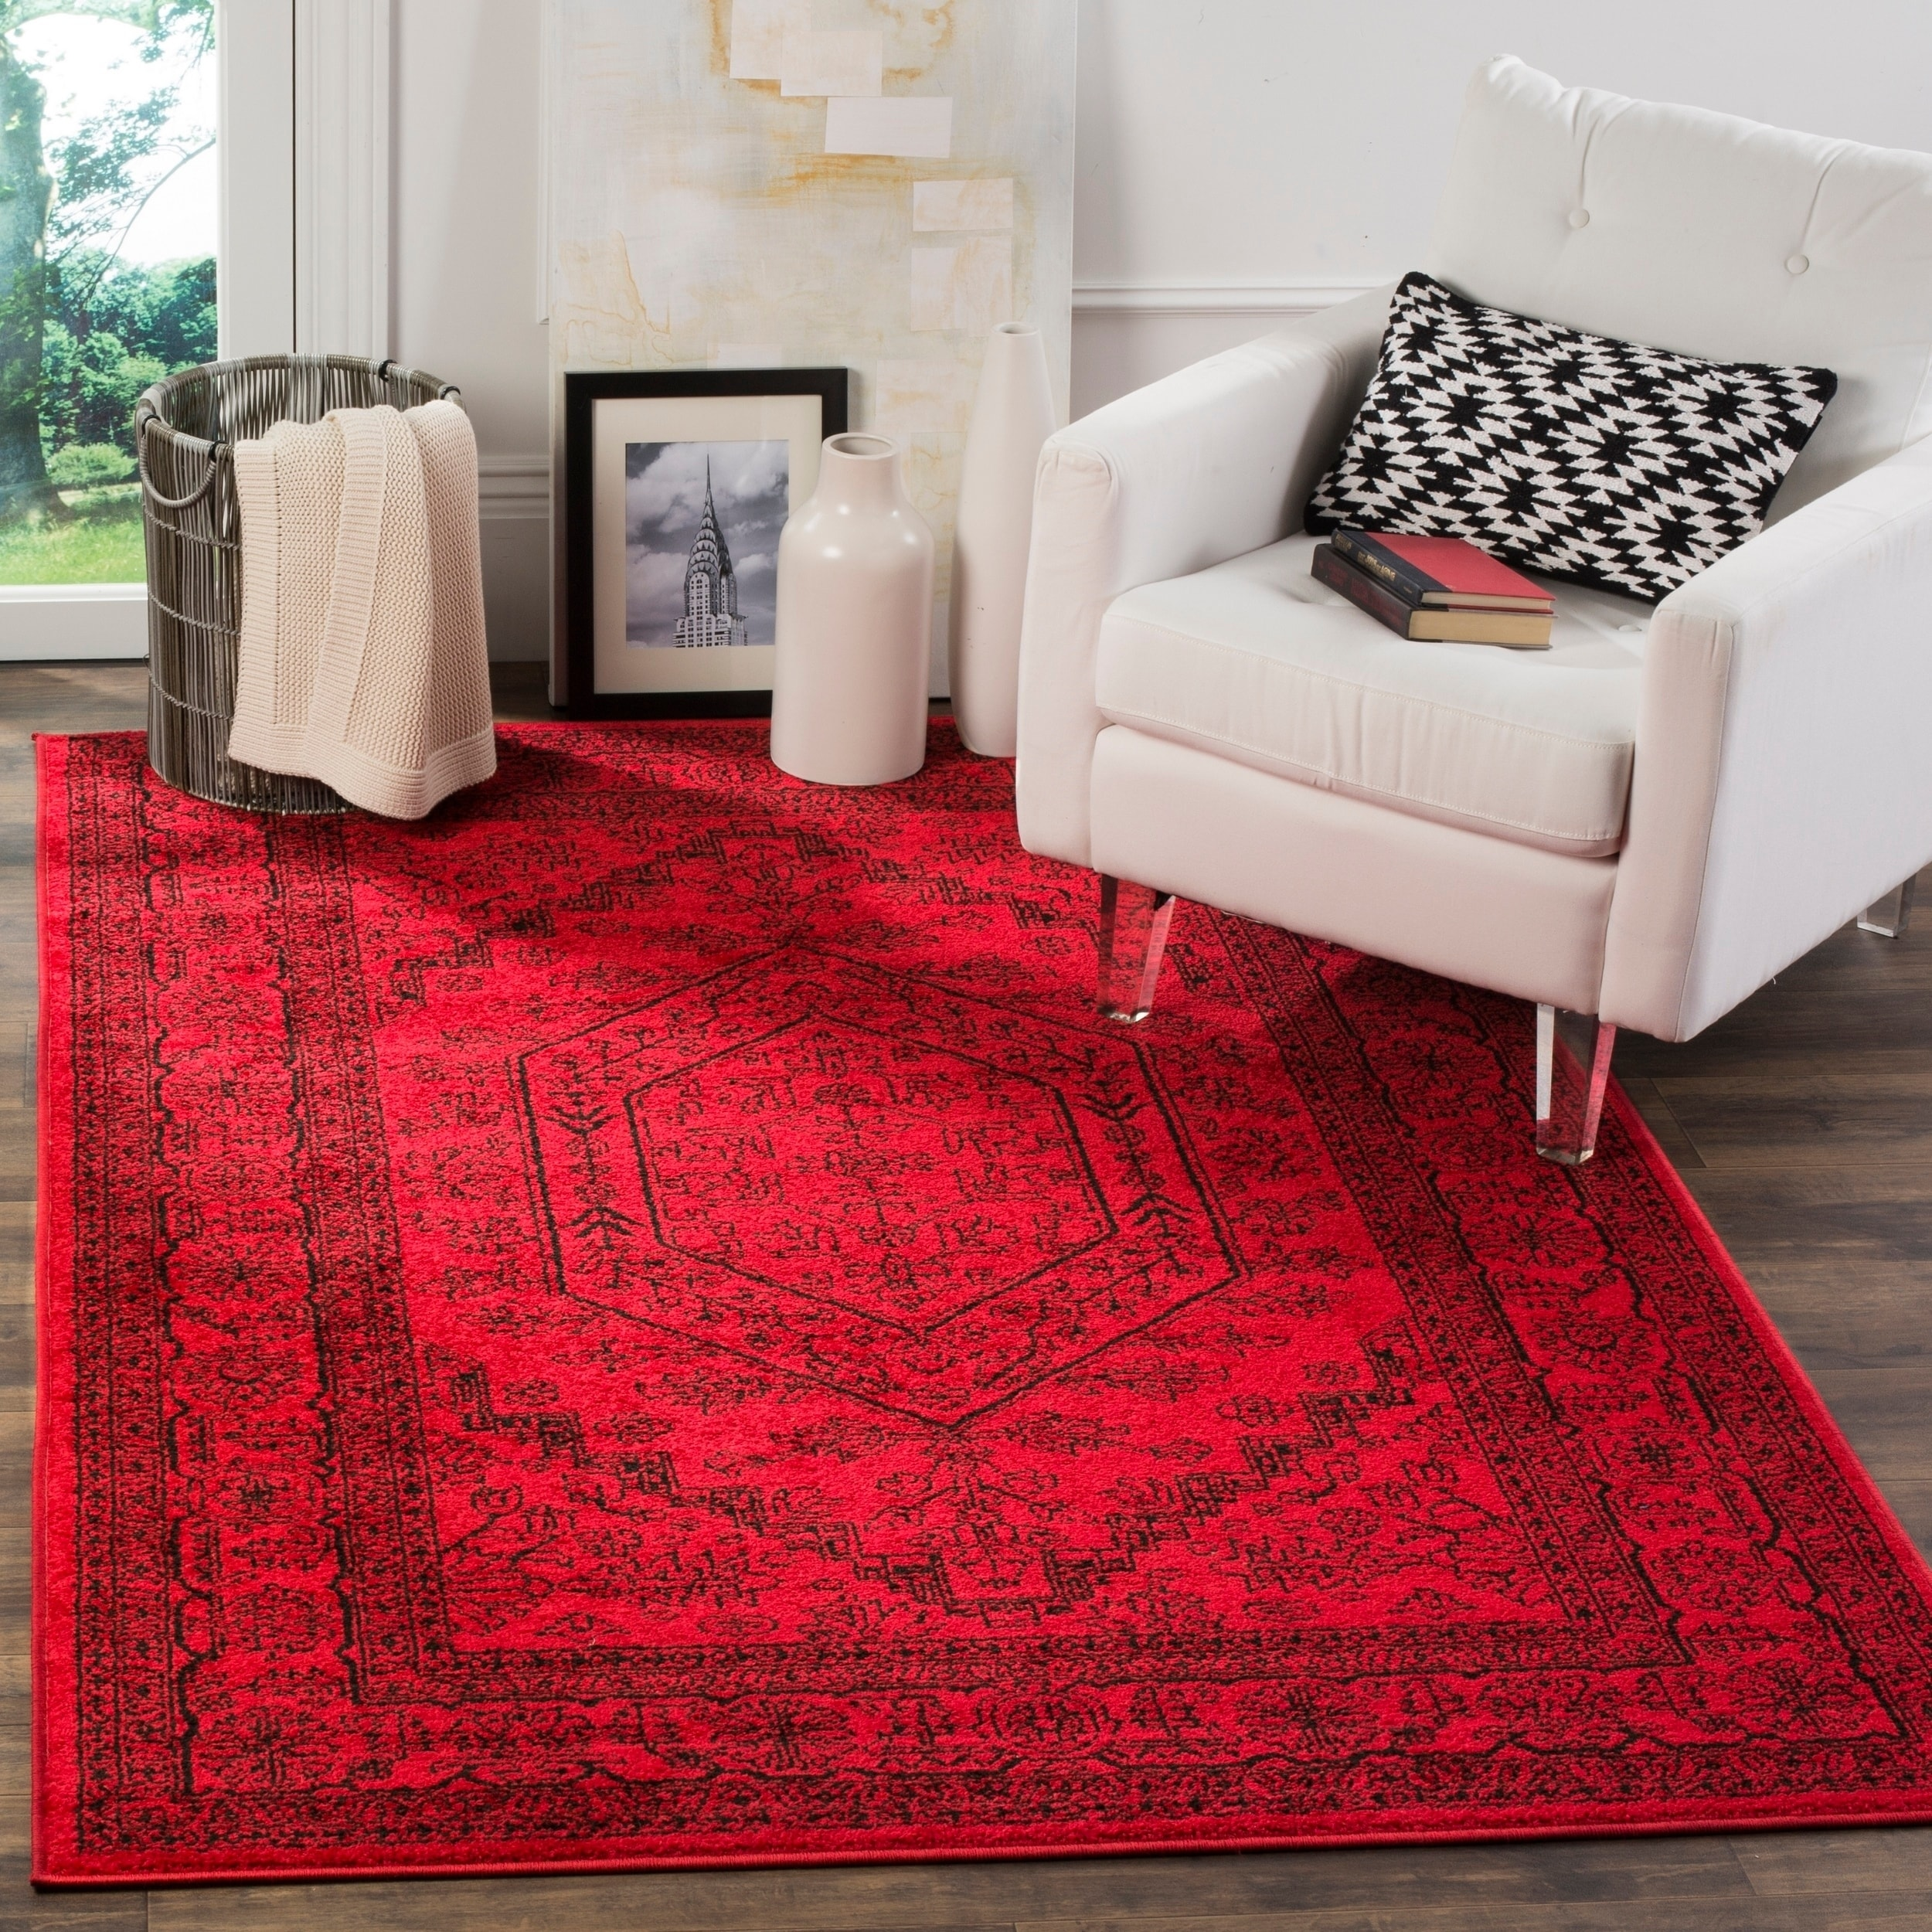 Shop safavieh adirondack vintage red black rug 9 x 12 on sale free shipping today overstock com 9156612